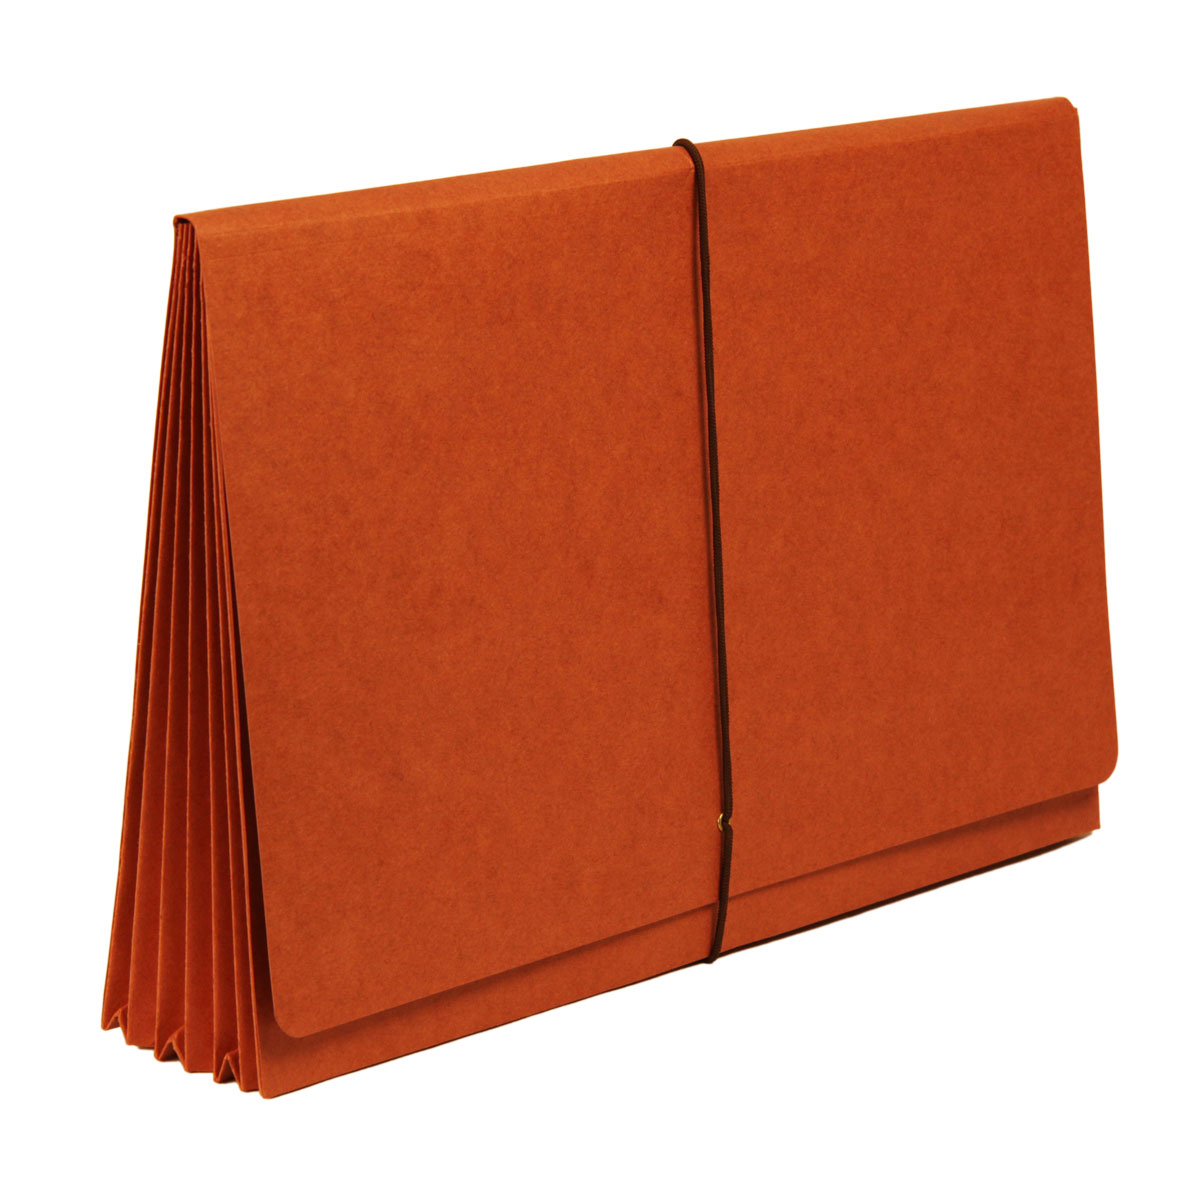 A-74206 - Redrope Expansion Wallet, 5-1/4